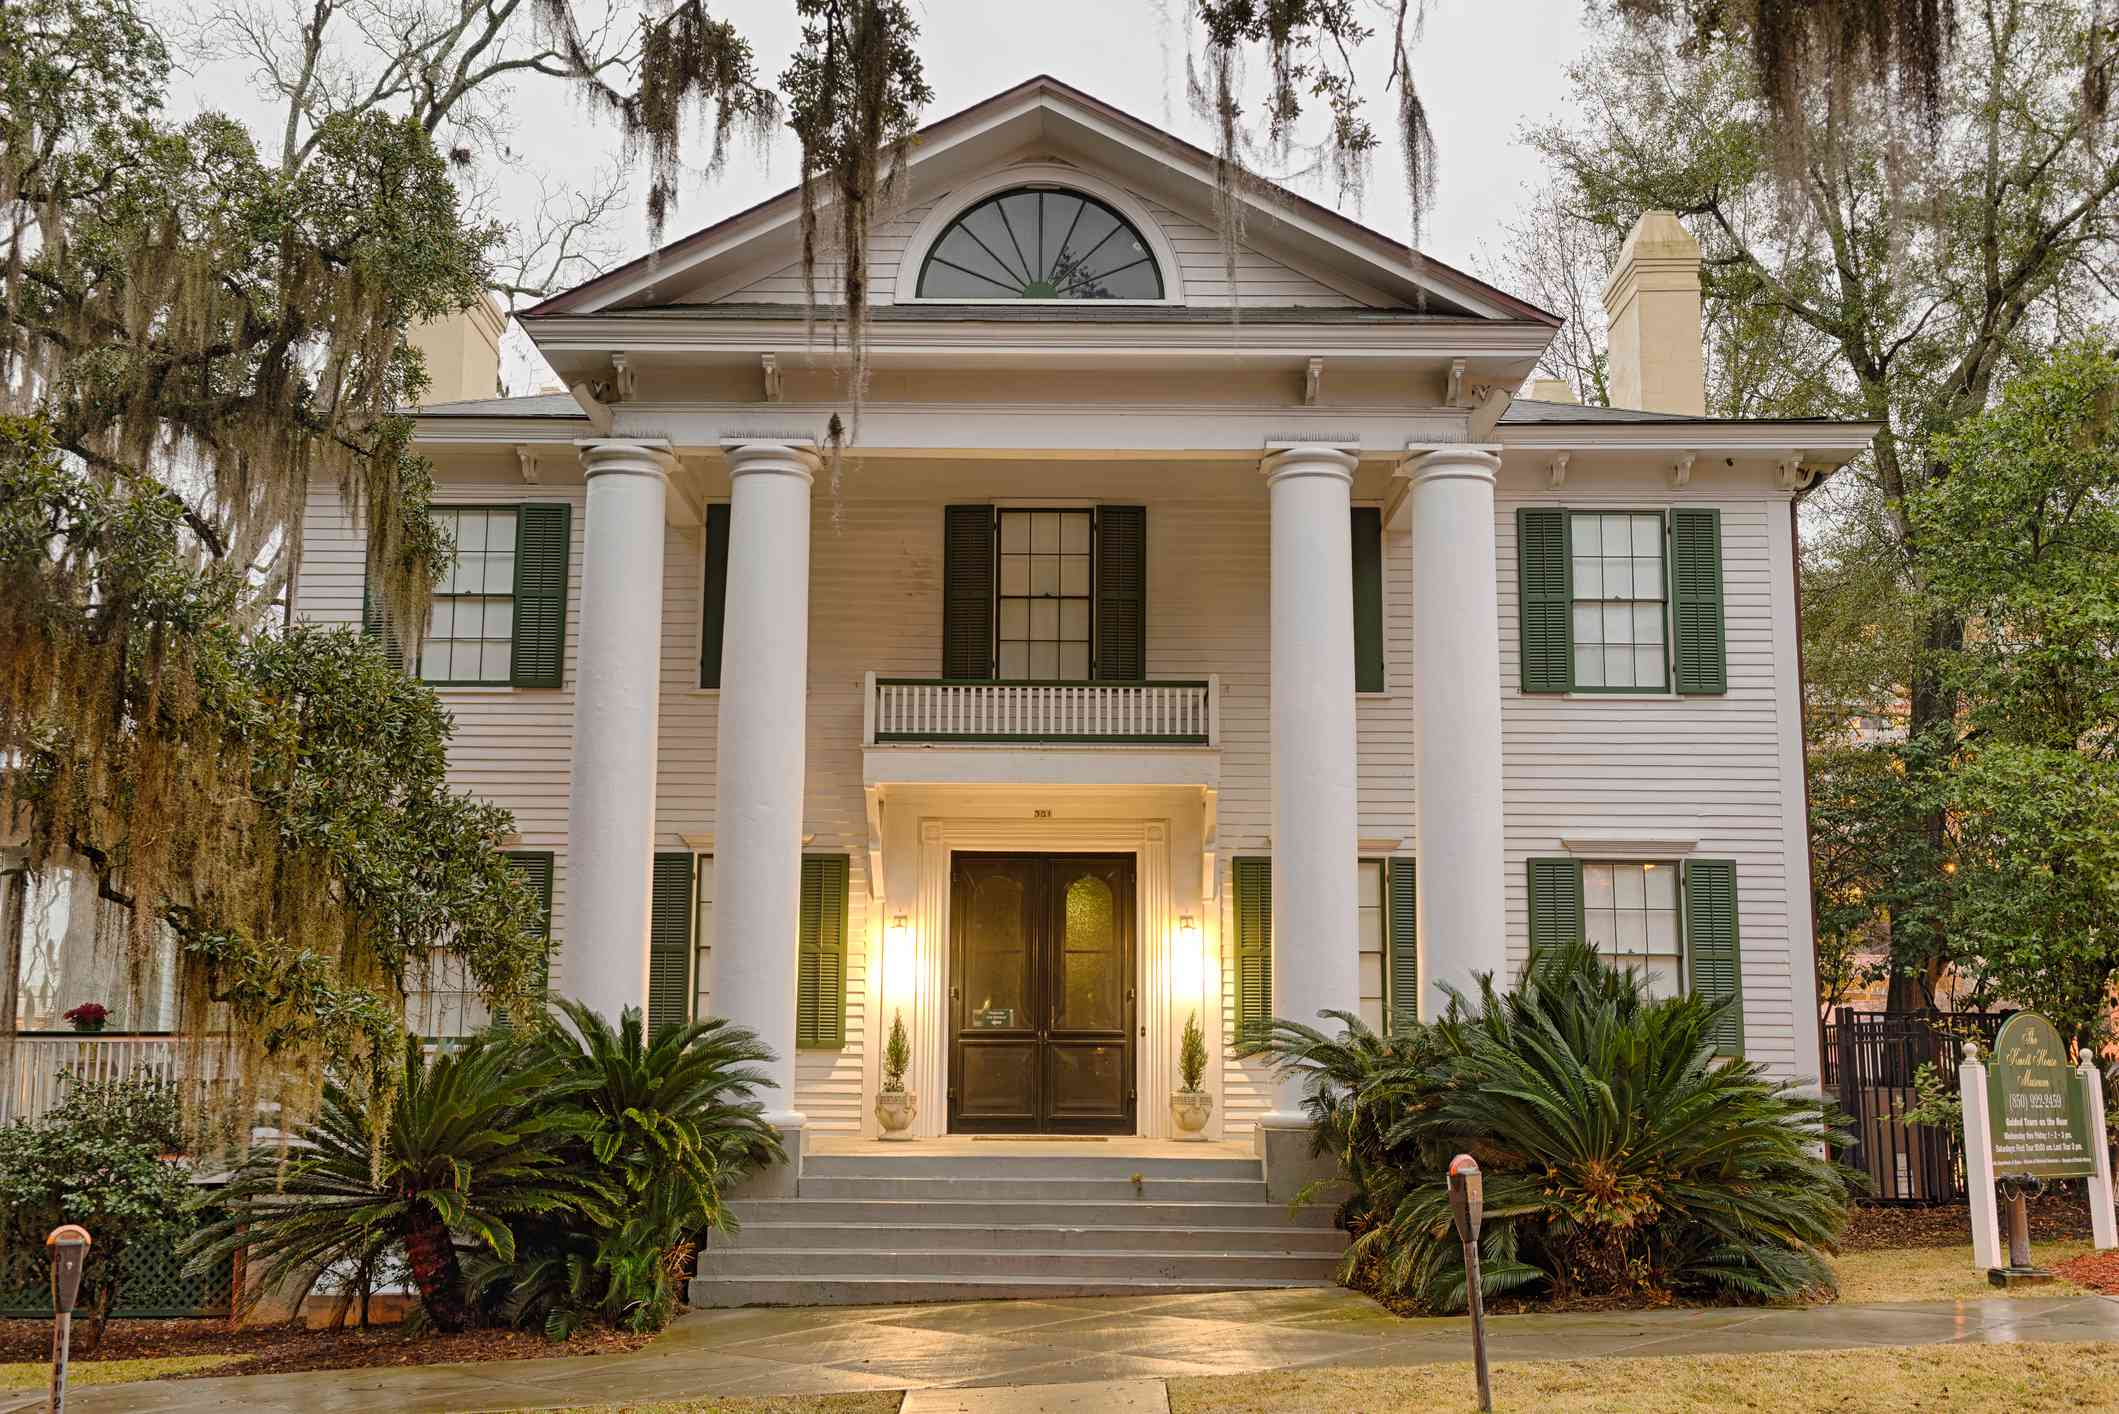 Knott House Museum in Tallahassee, Florida